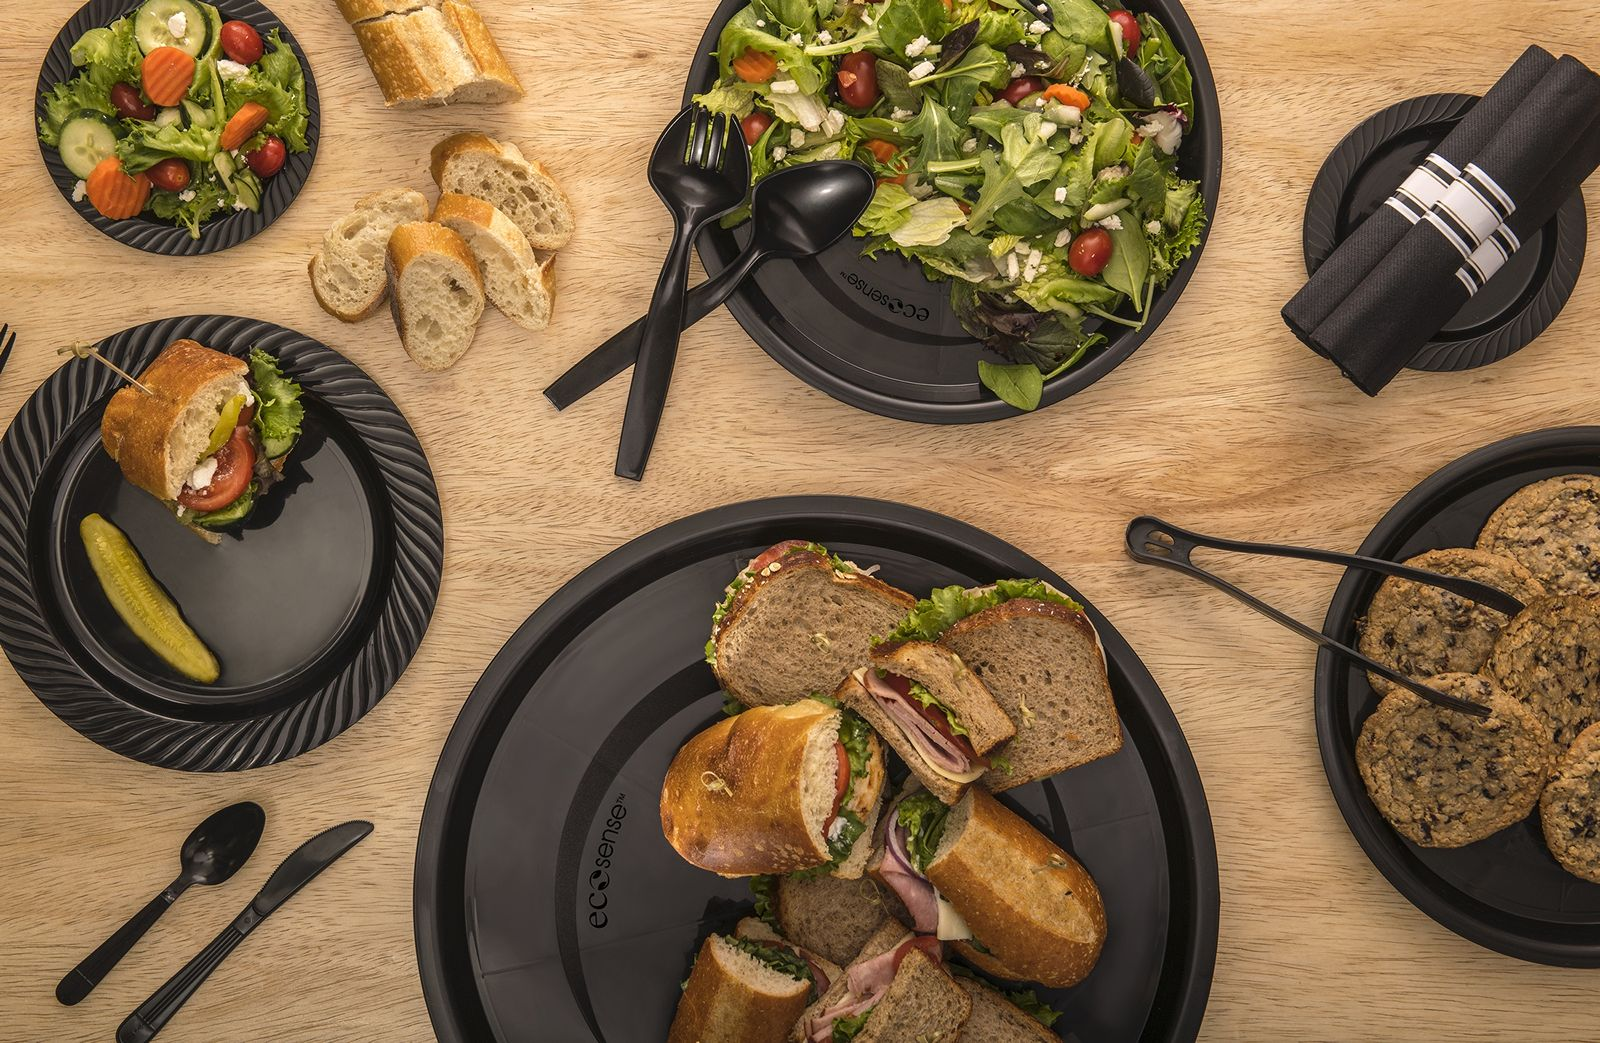 Novolex Introduces EcoSense Catering Trays, Plates and Utensils